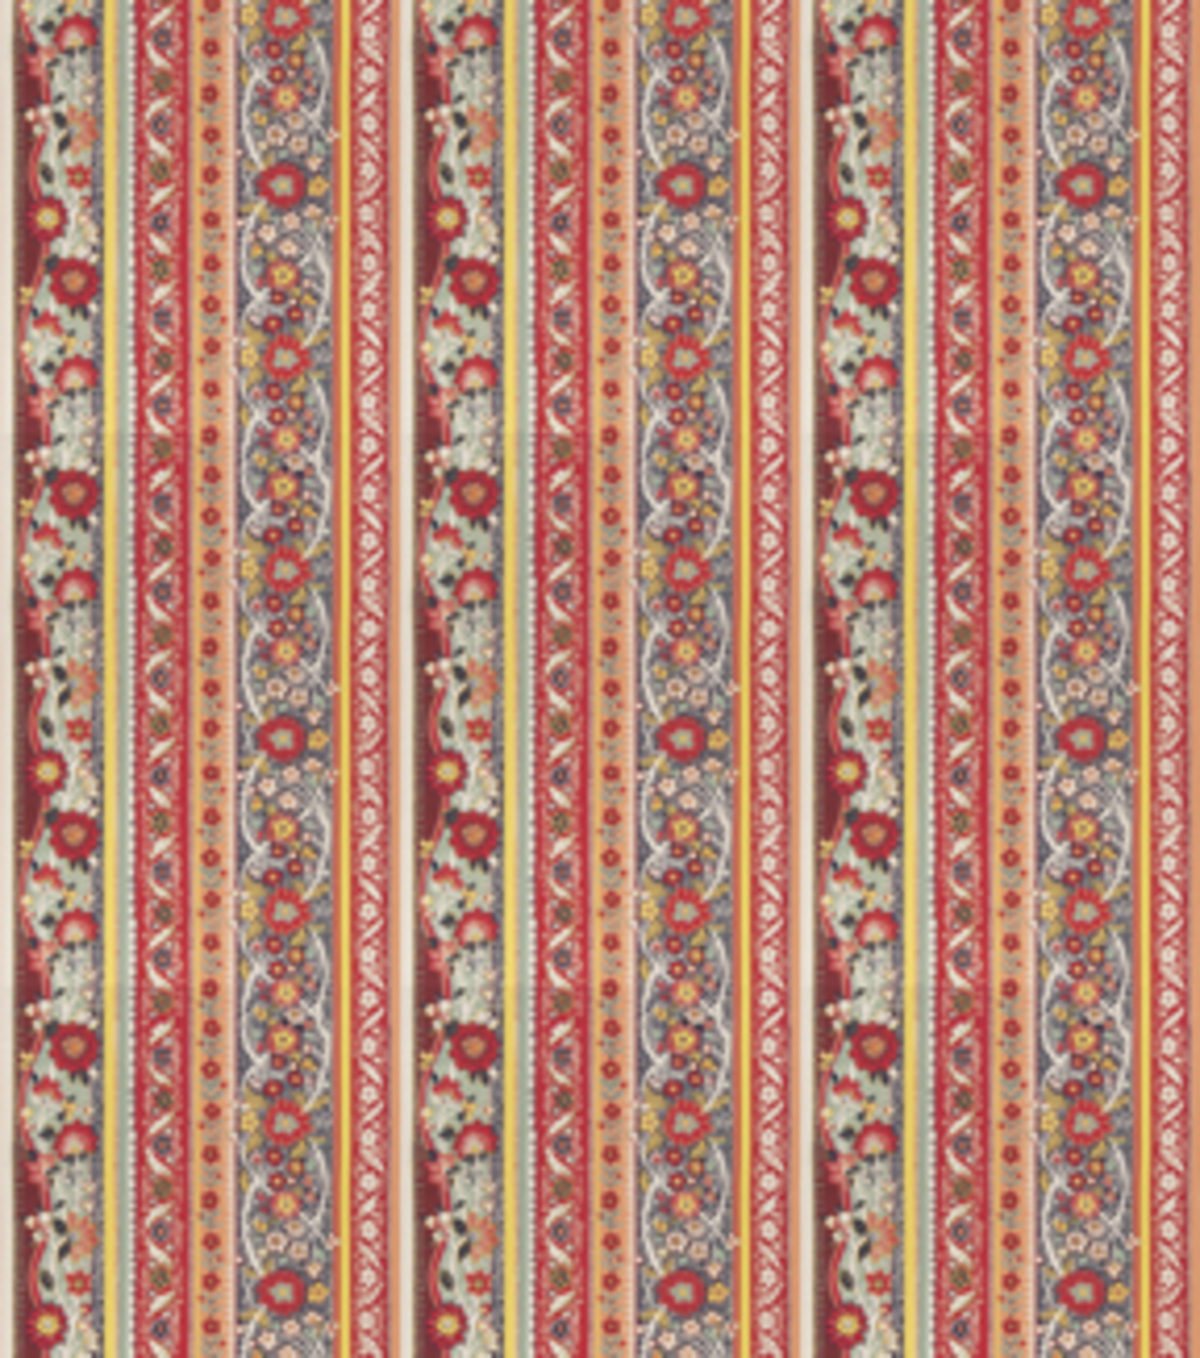 Home Decor 8\u0022x8\u0022 Fabric Swatch-Print Fabric Eaton Square Shield Bright Multi